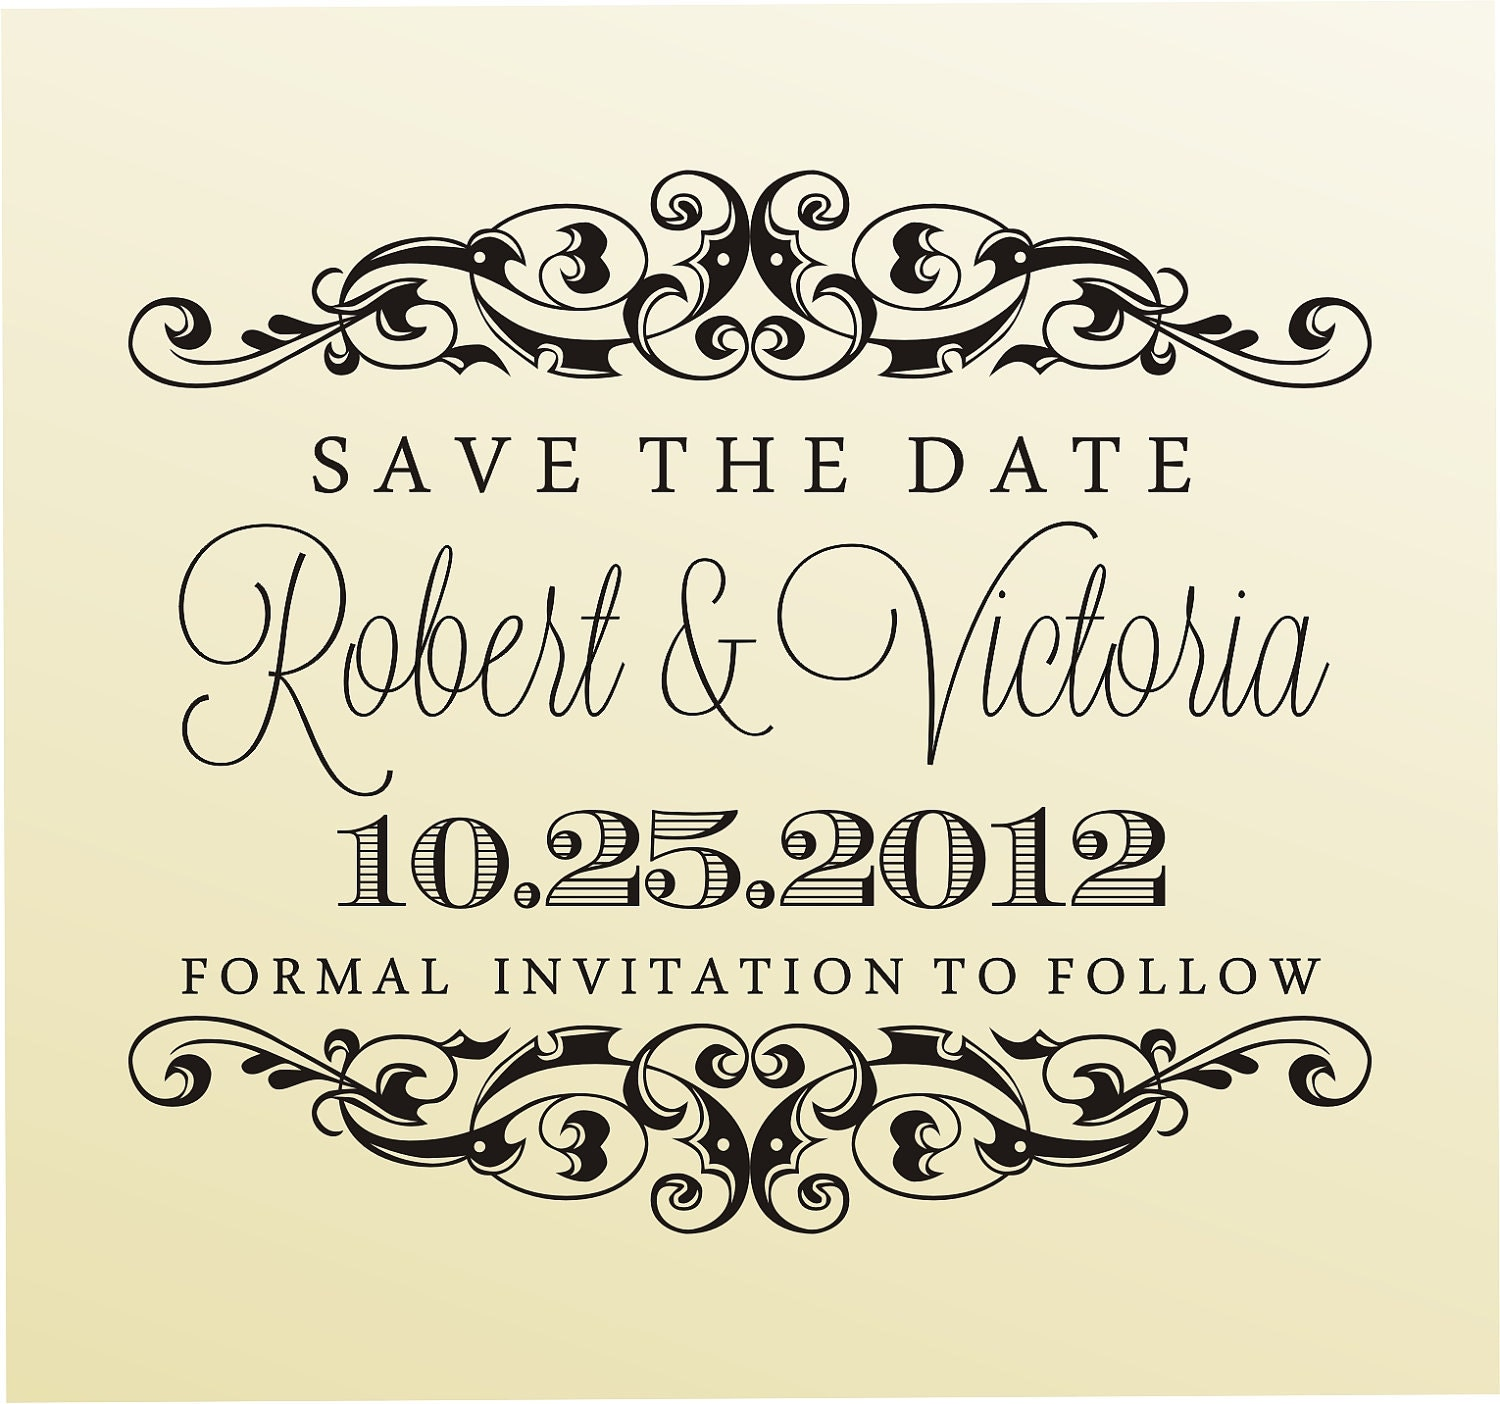 Save The Date Wedding Floral Ornament Wedding Floral: SAVE The DATE Stamp Clear Block Rubber Stamp Modern